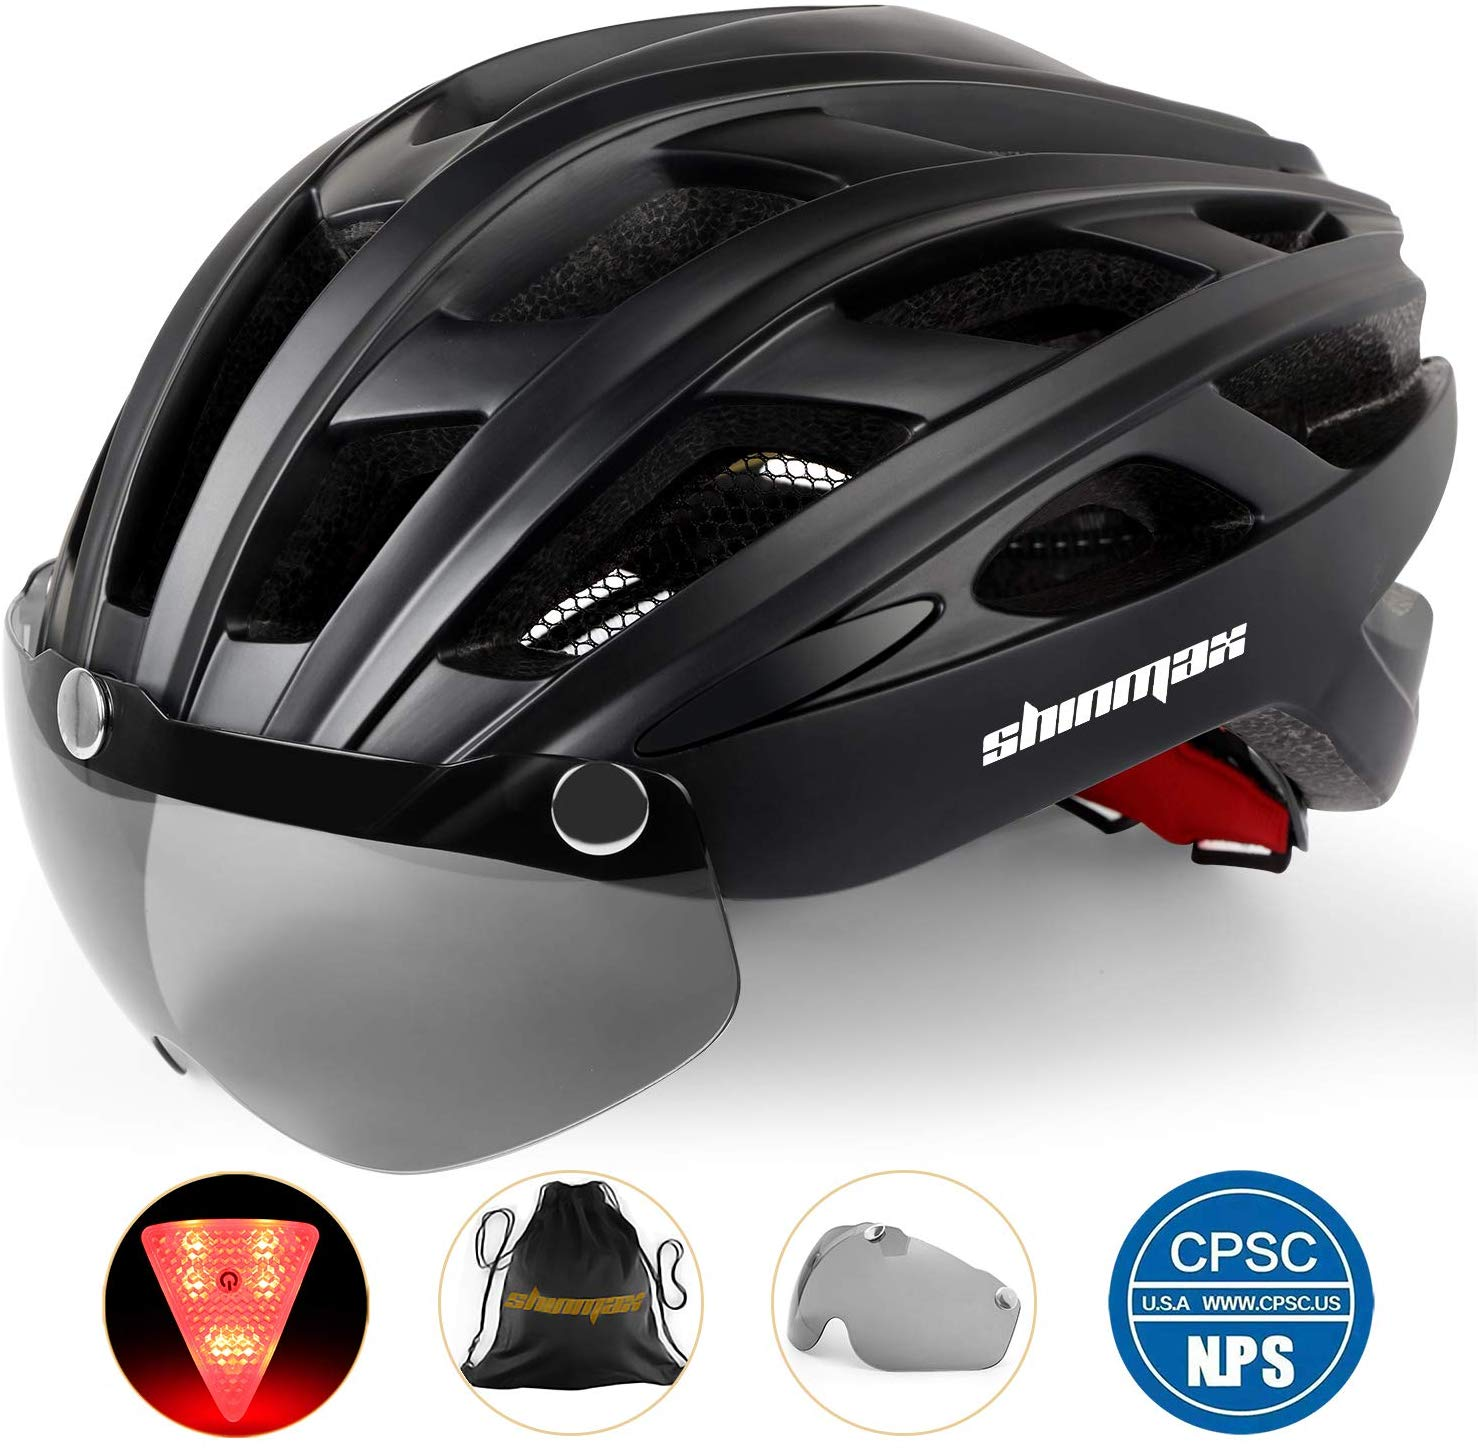 Basecamp Bike Helmet, Bicycle Helmet CPSC Certified